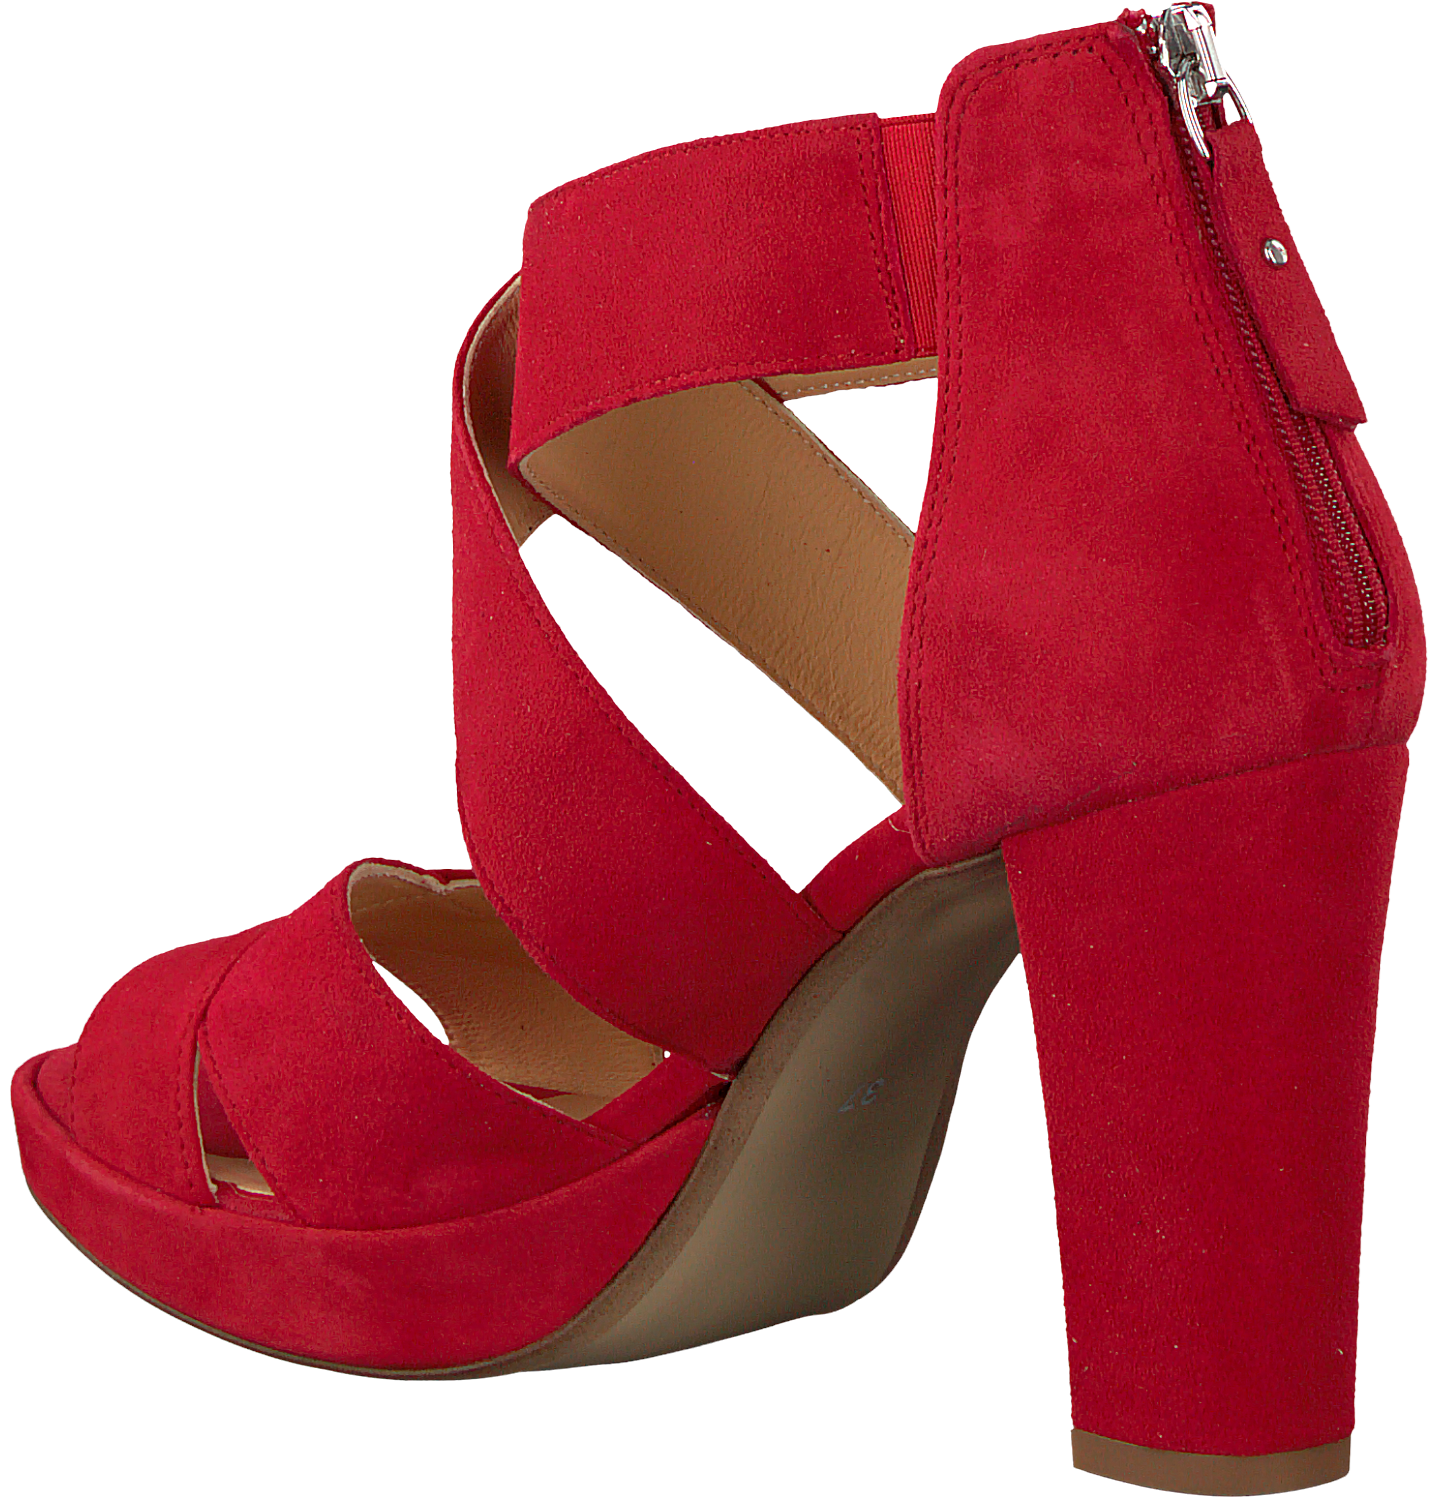 Omoda Sandales Rouges 8010853 9jdH69